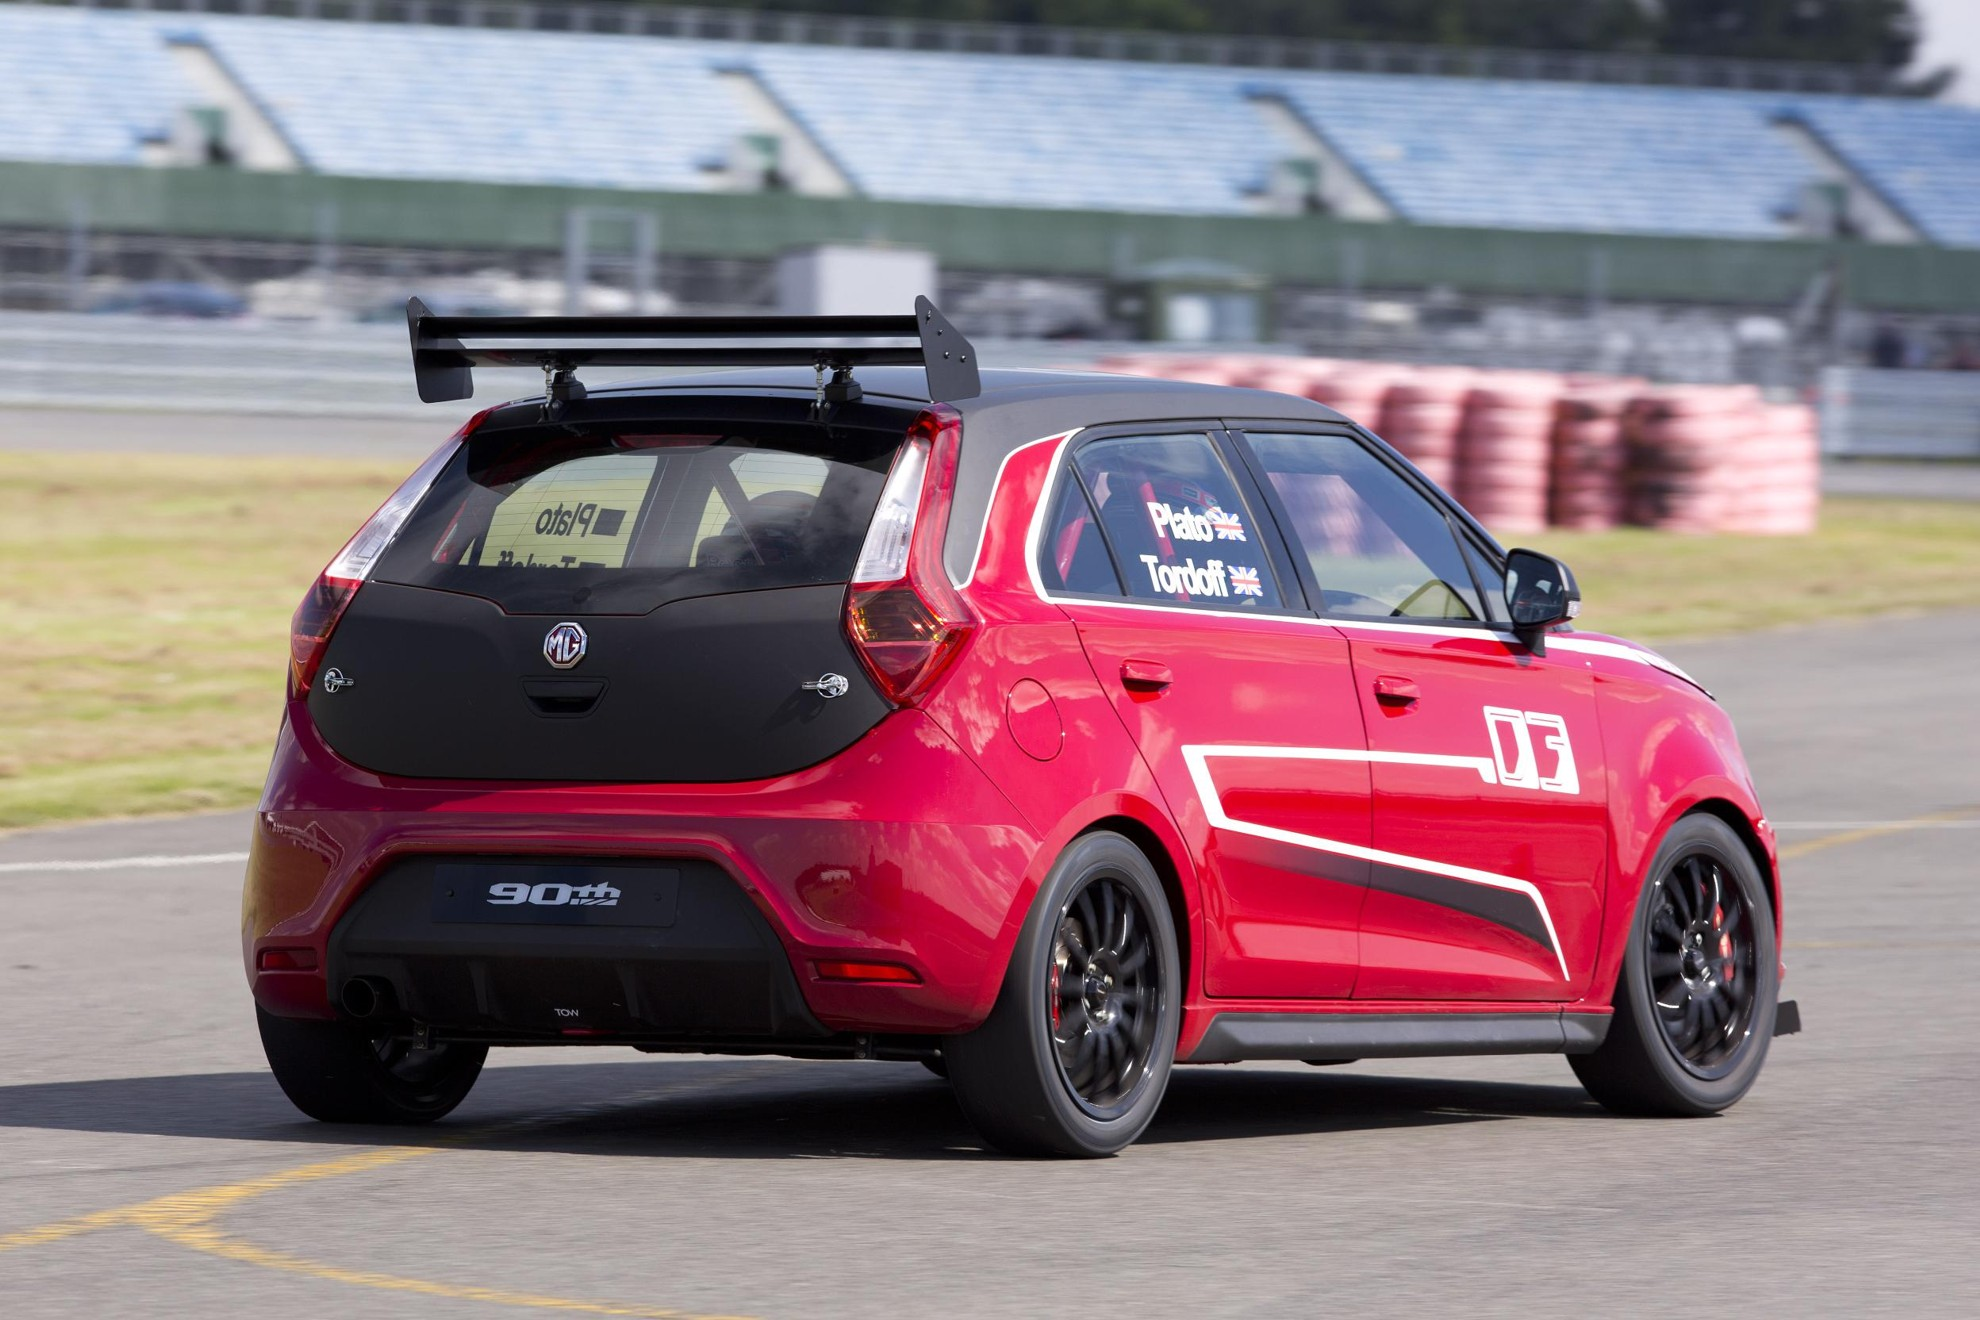 MG DEBUTS MG3 TROPHY CHAMPIONSHIP CONCEPT AT MG90 EVENT